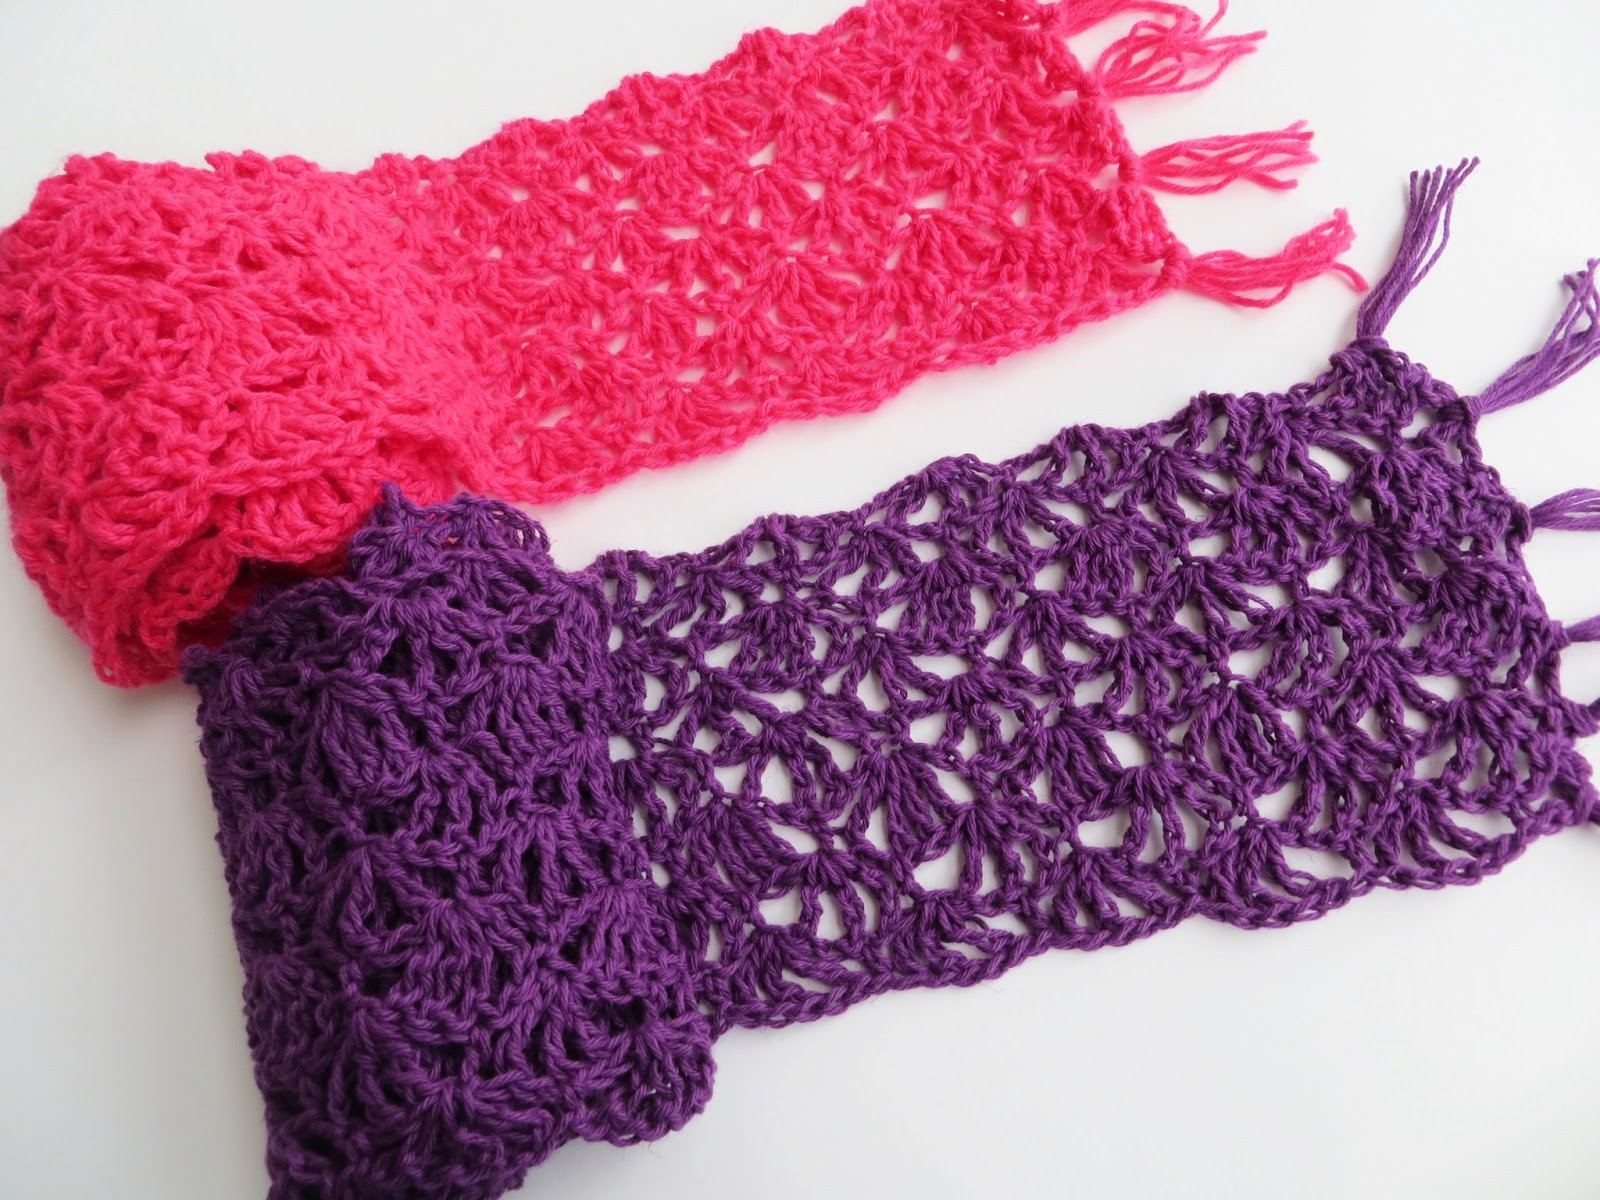 Scarf Crochet Fresh Crochet Dreamz Alana Lacy Scarf Free Crochet Pattern Of Innovative 47 Pictures Scarf Crochet